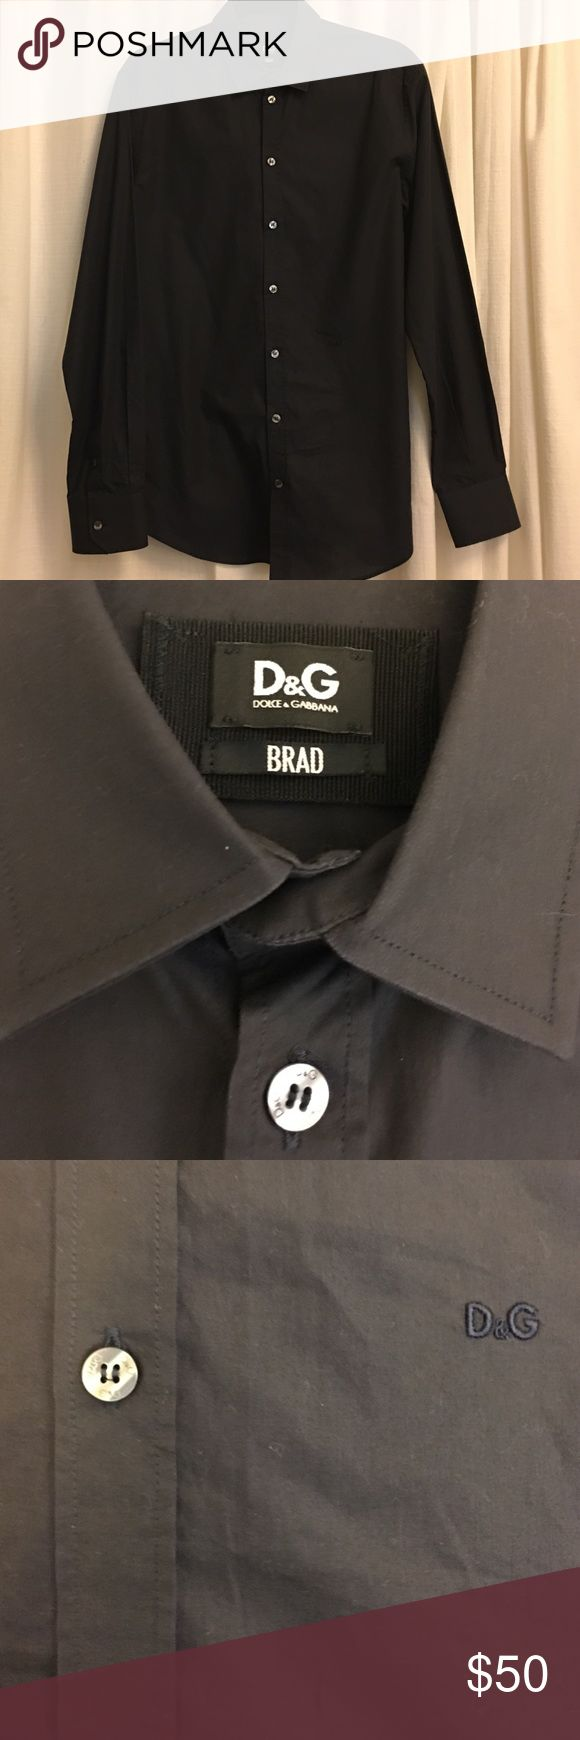 Dolce & Gabbana Slim Dress Shirt - Navy, Sz 16 Great color - dark navy blue. Worn only a handful of times and in flawless condition. Dolce & Gabbana Shirts Dress Shirts